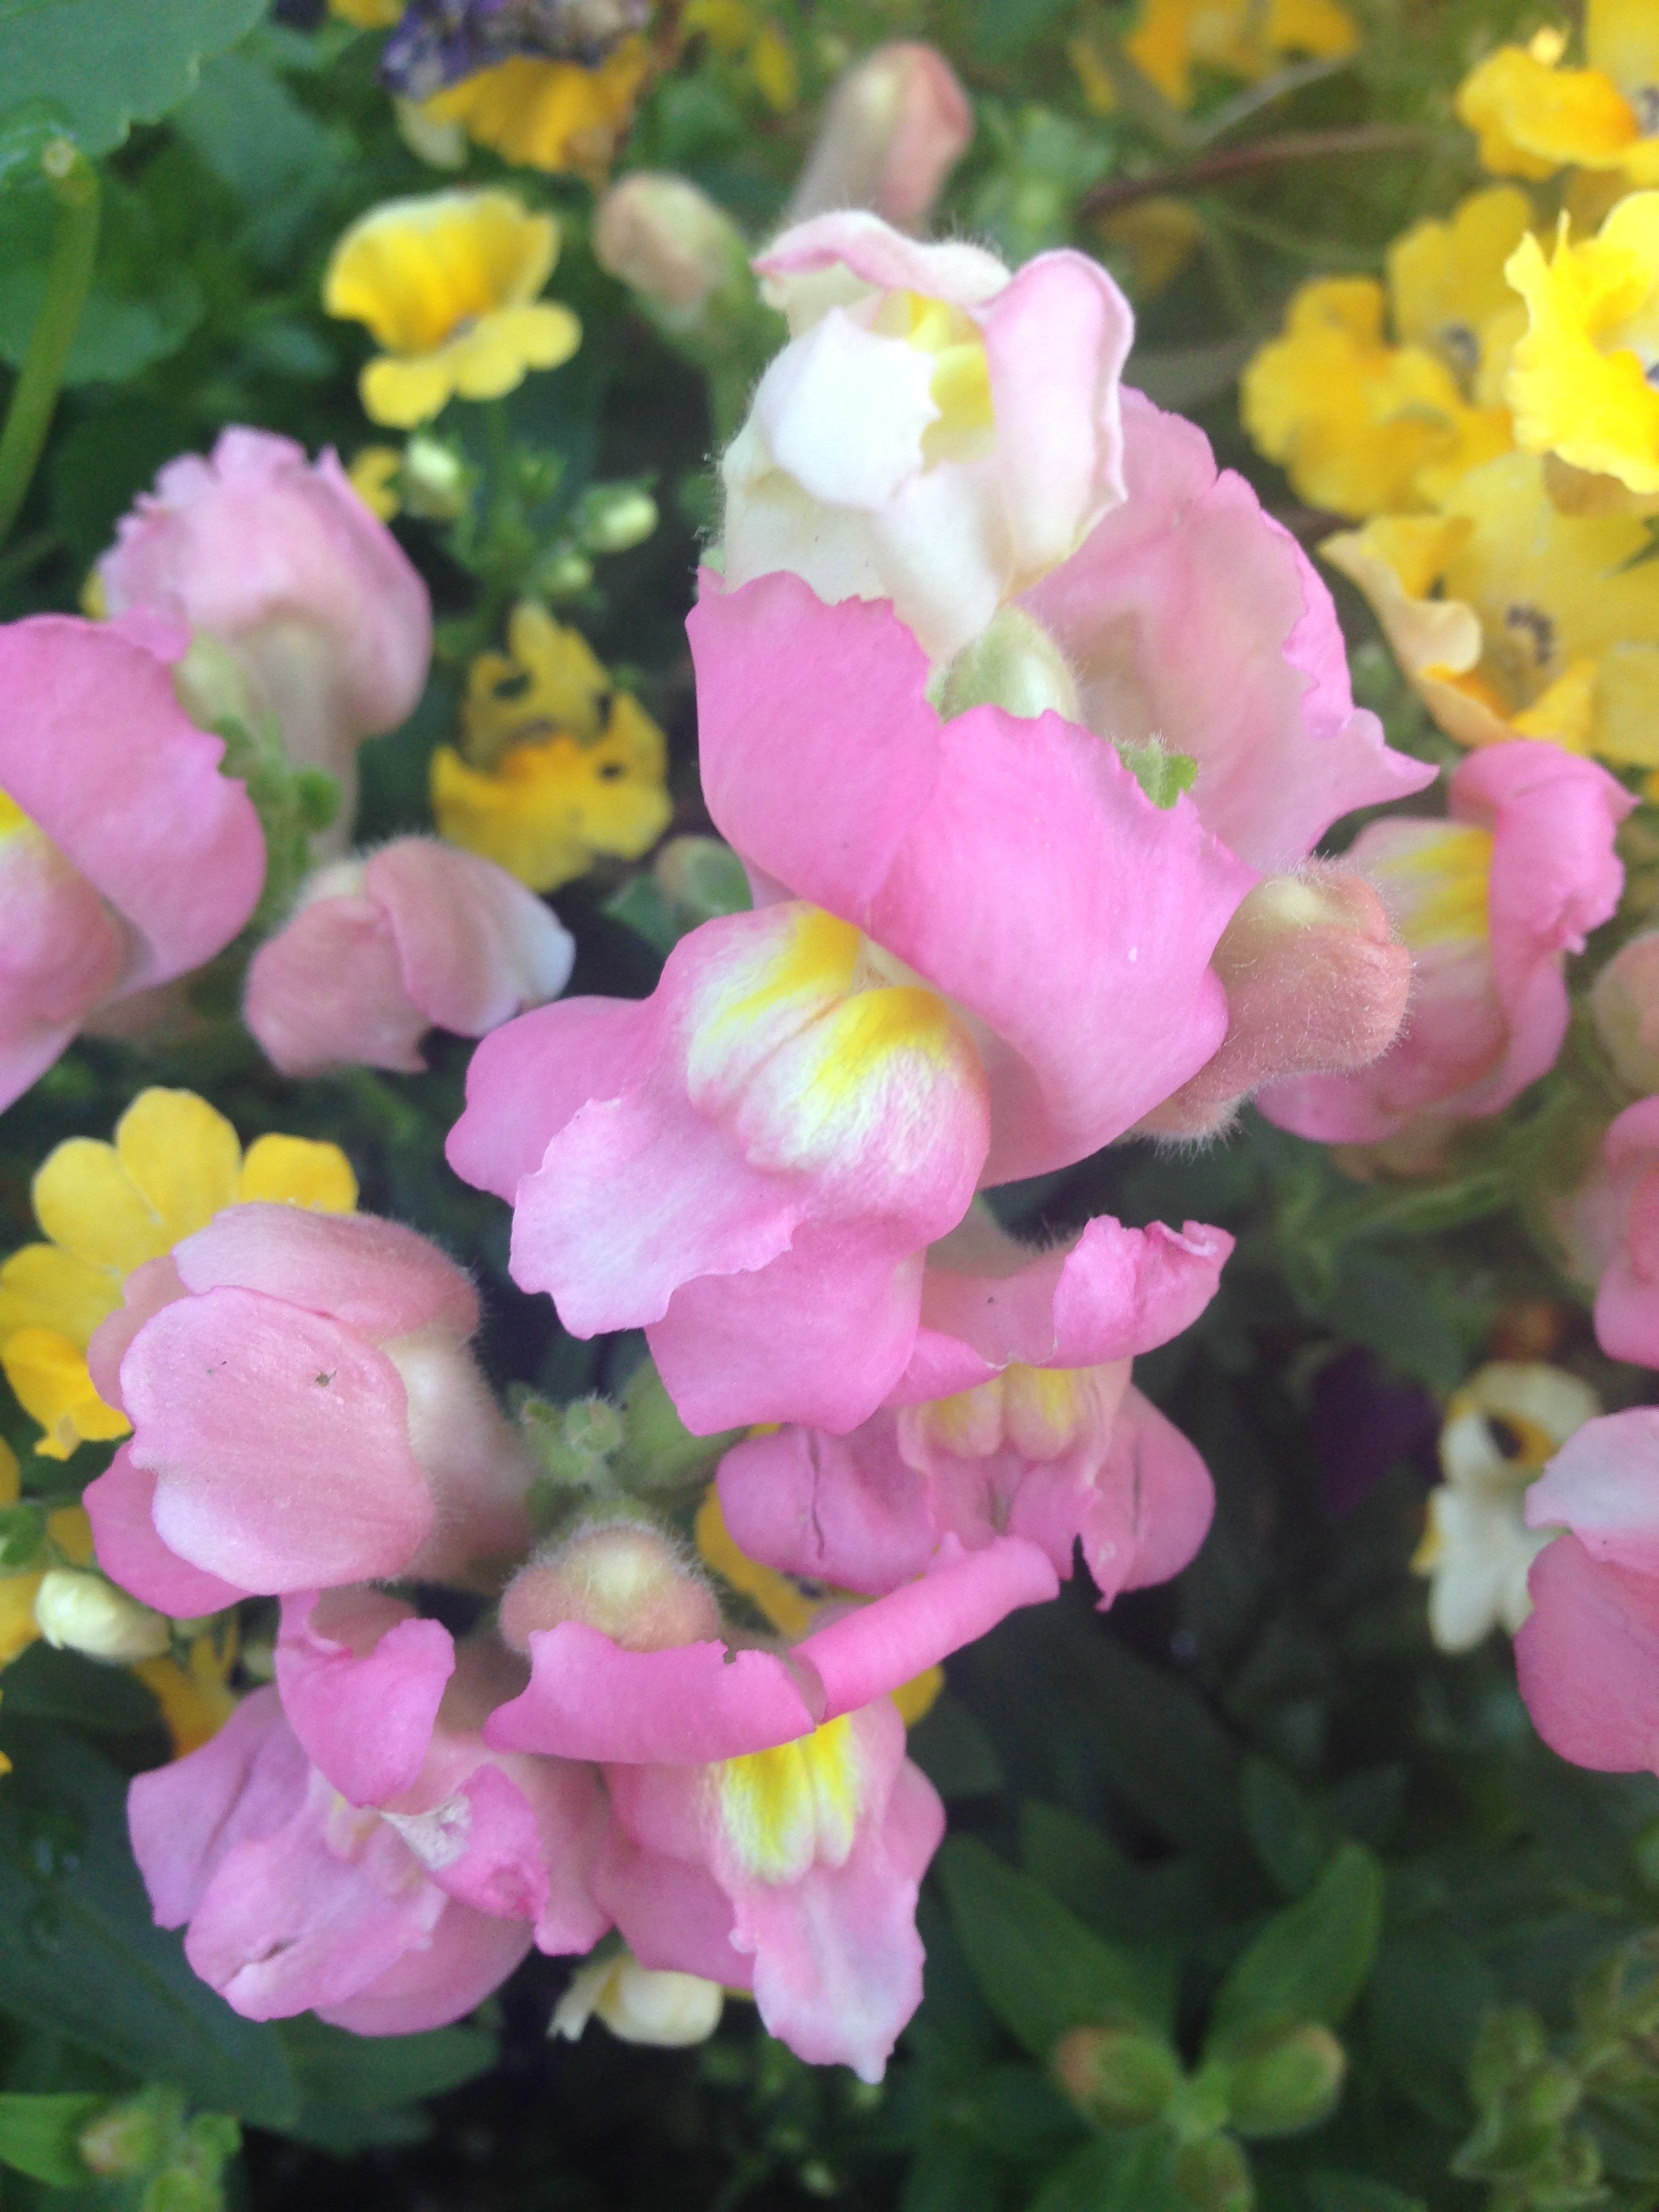 Snapdragon Photo by Maria Gulley